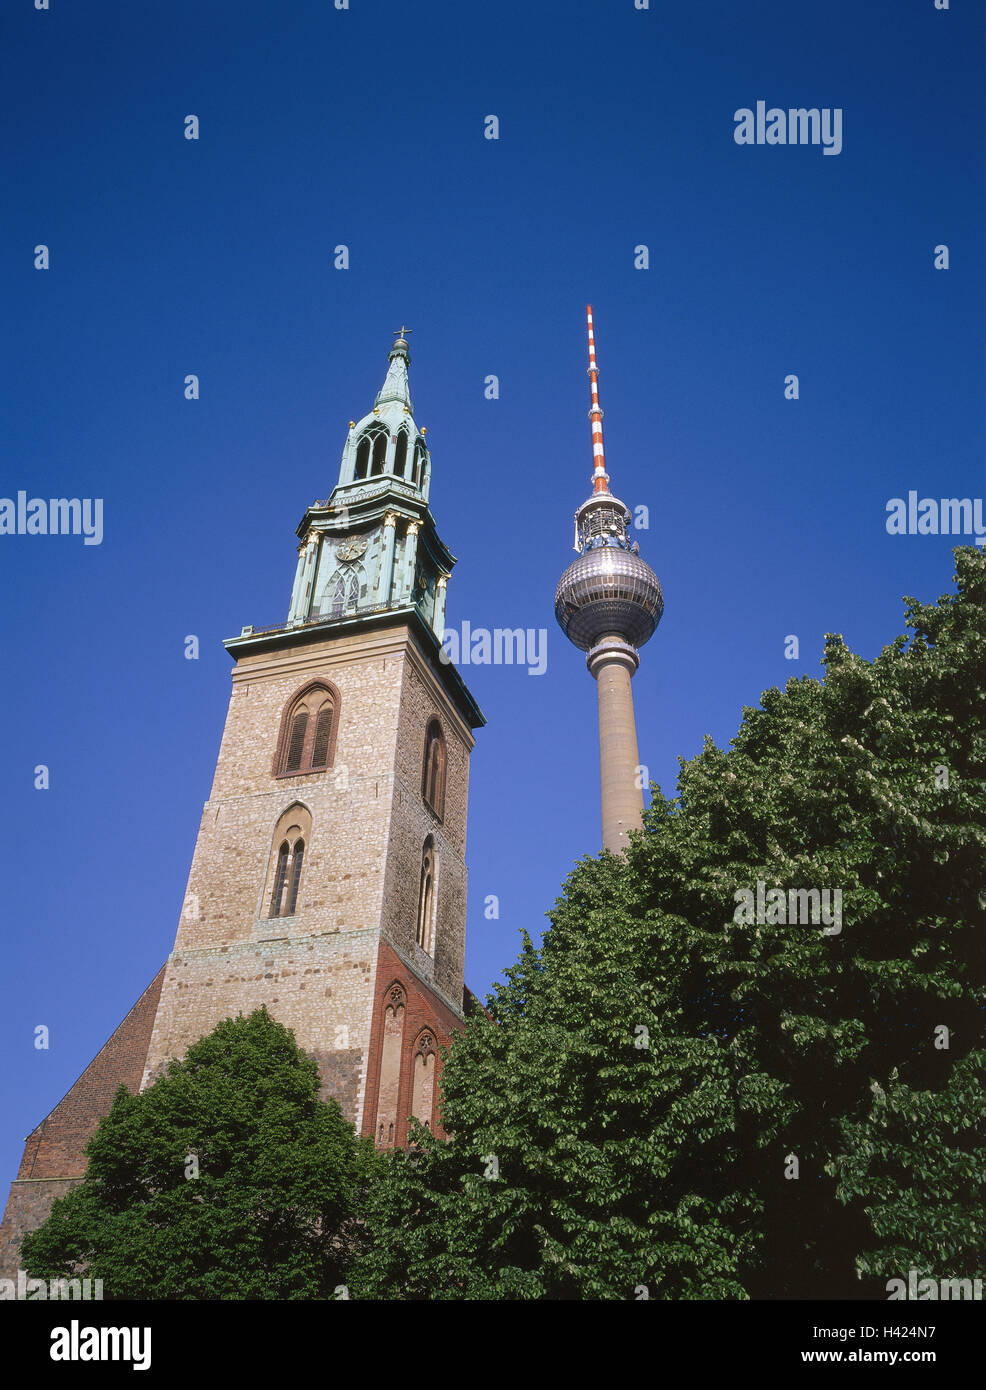 Germany, Berlin, television tower, Marien's church, detail, Europe, capital, town, Berlin, city centre, city - Stock Image